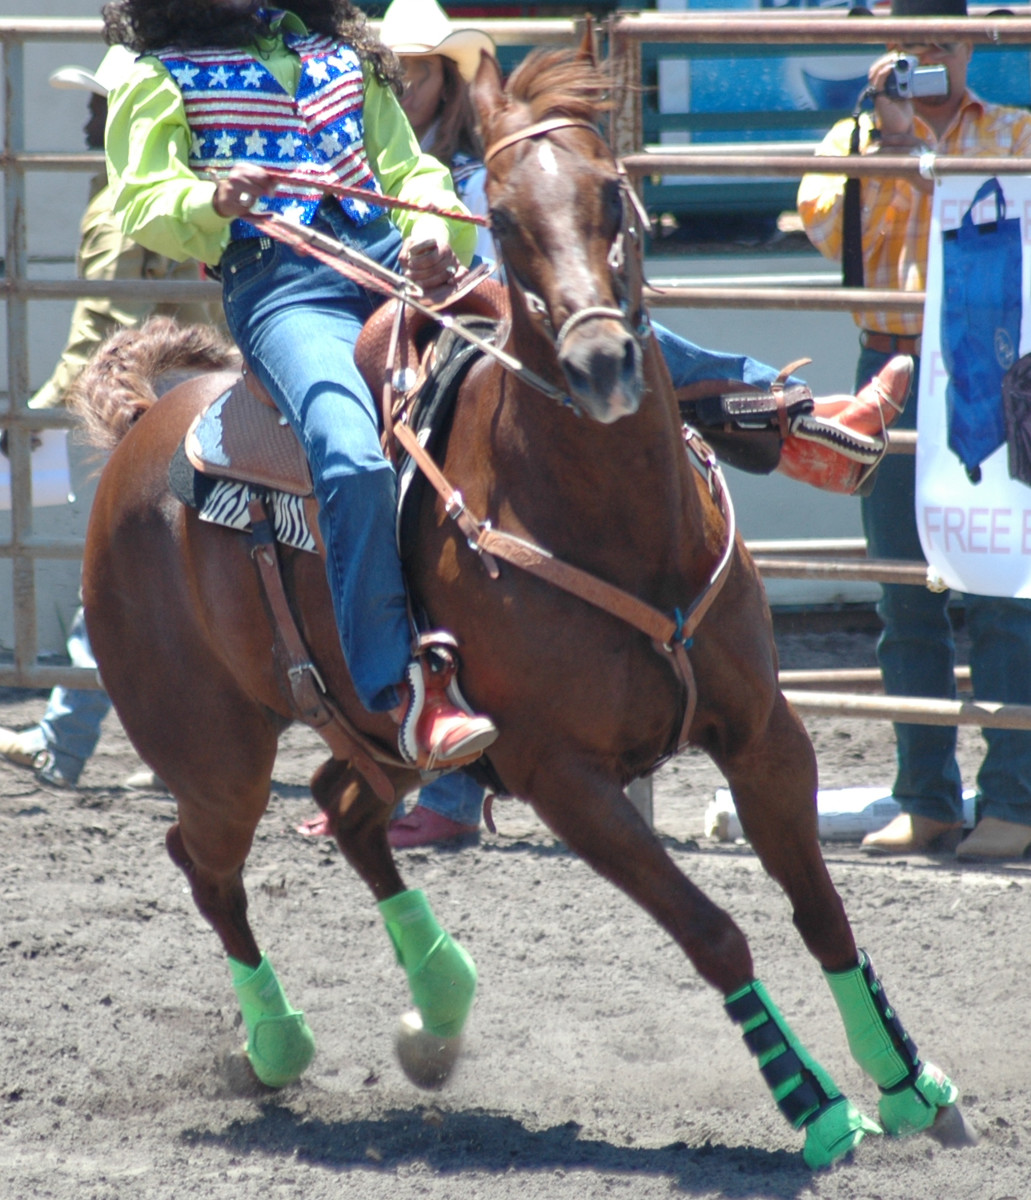 In barrel racing horses and riders must learn to lean in to tight turns.